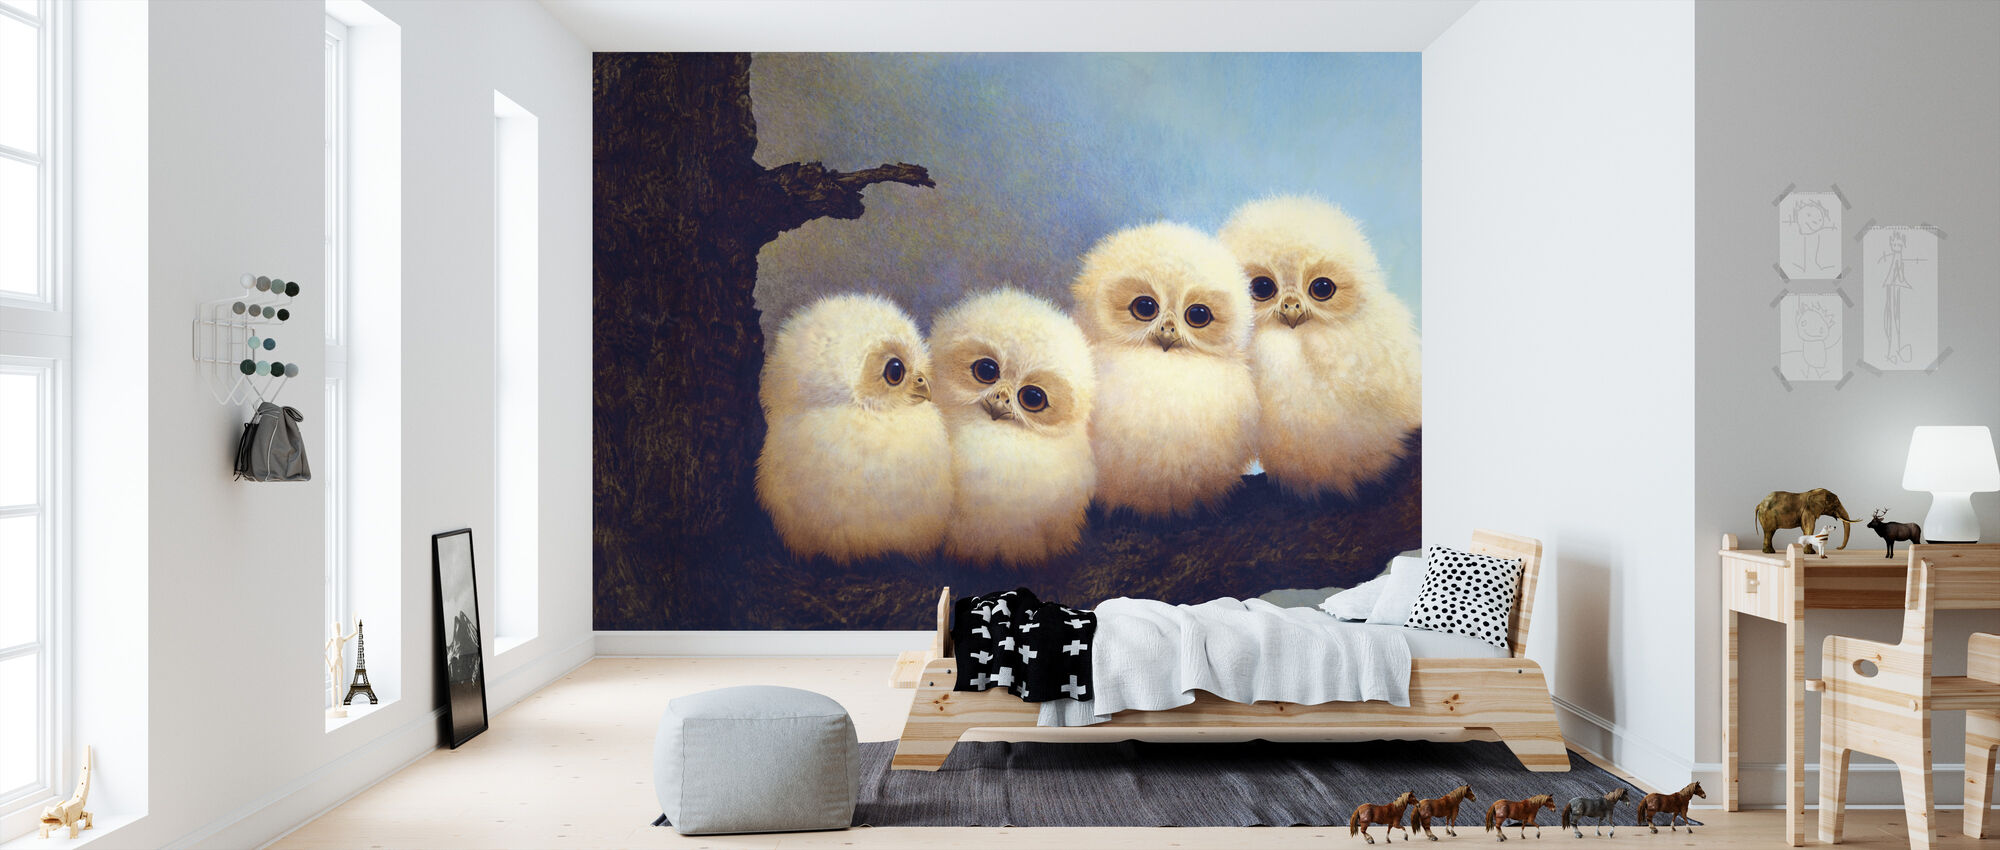 The Owlets - Wallpaper - Kids Room